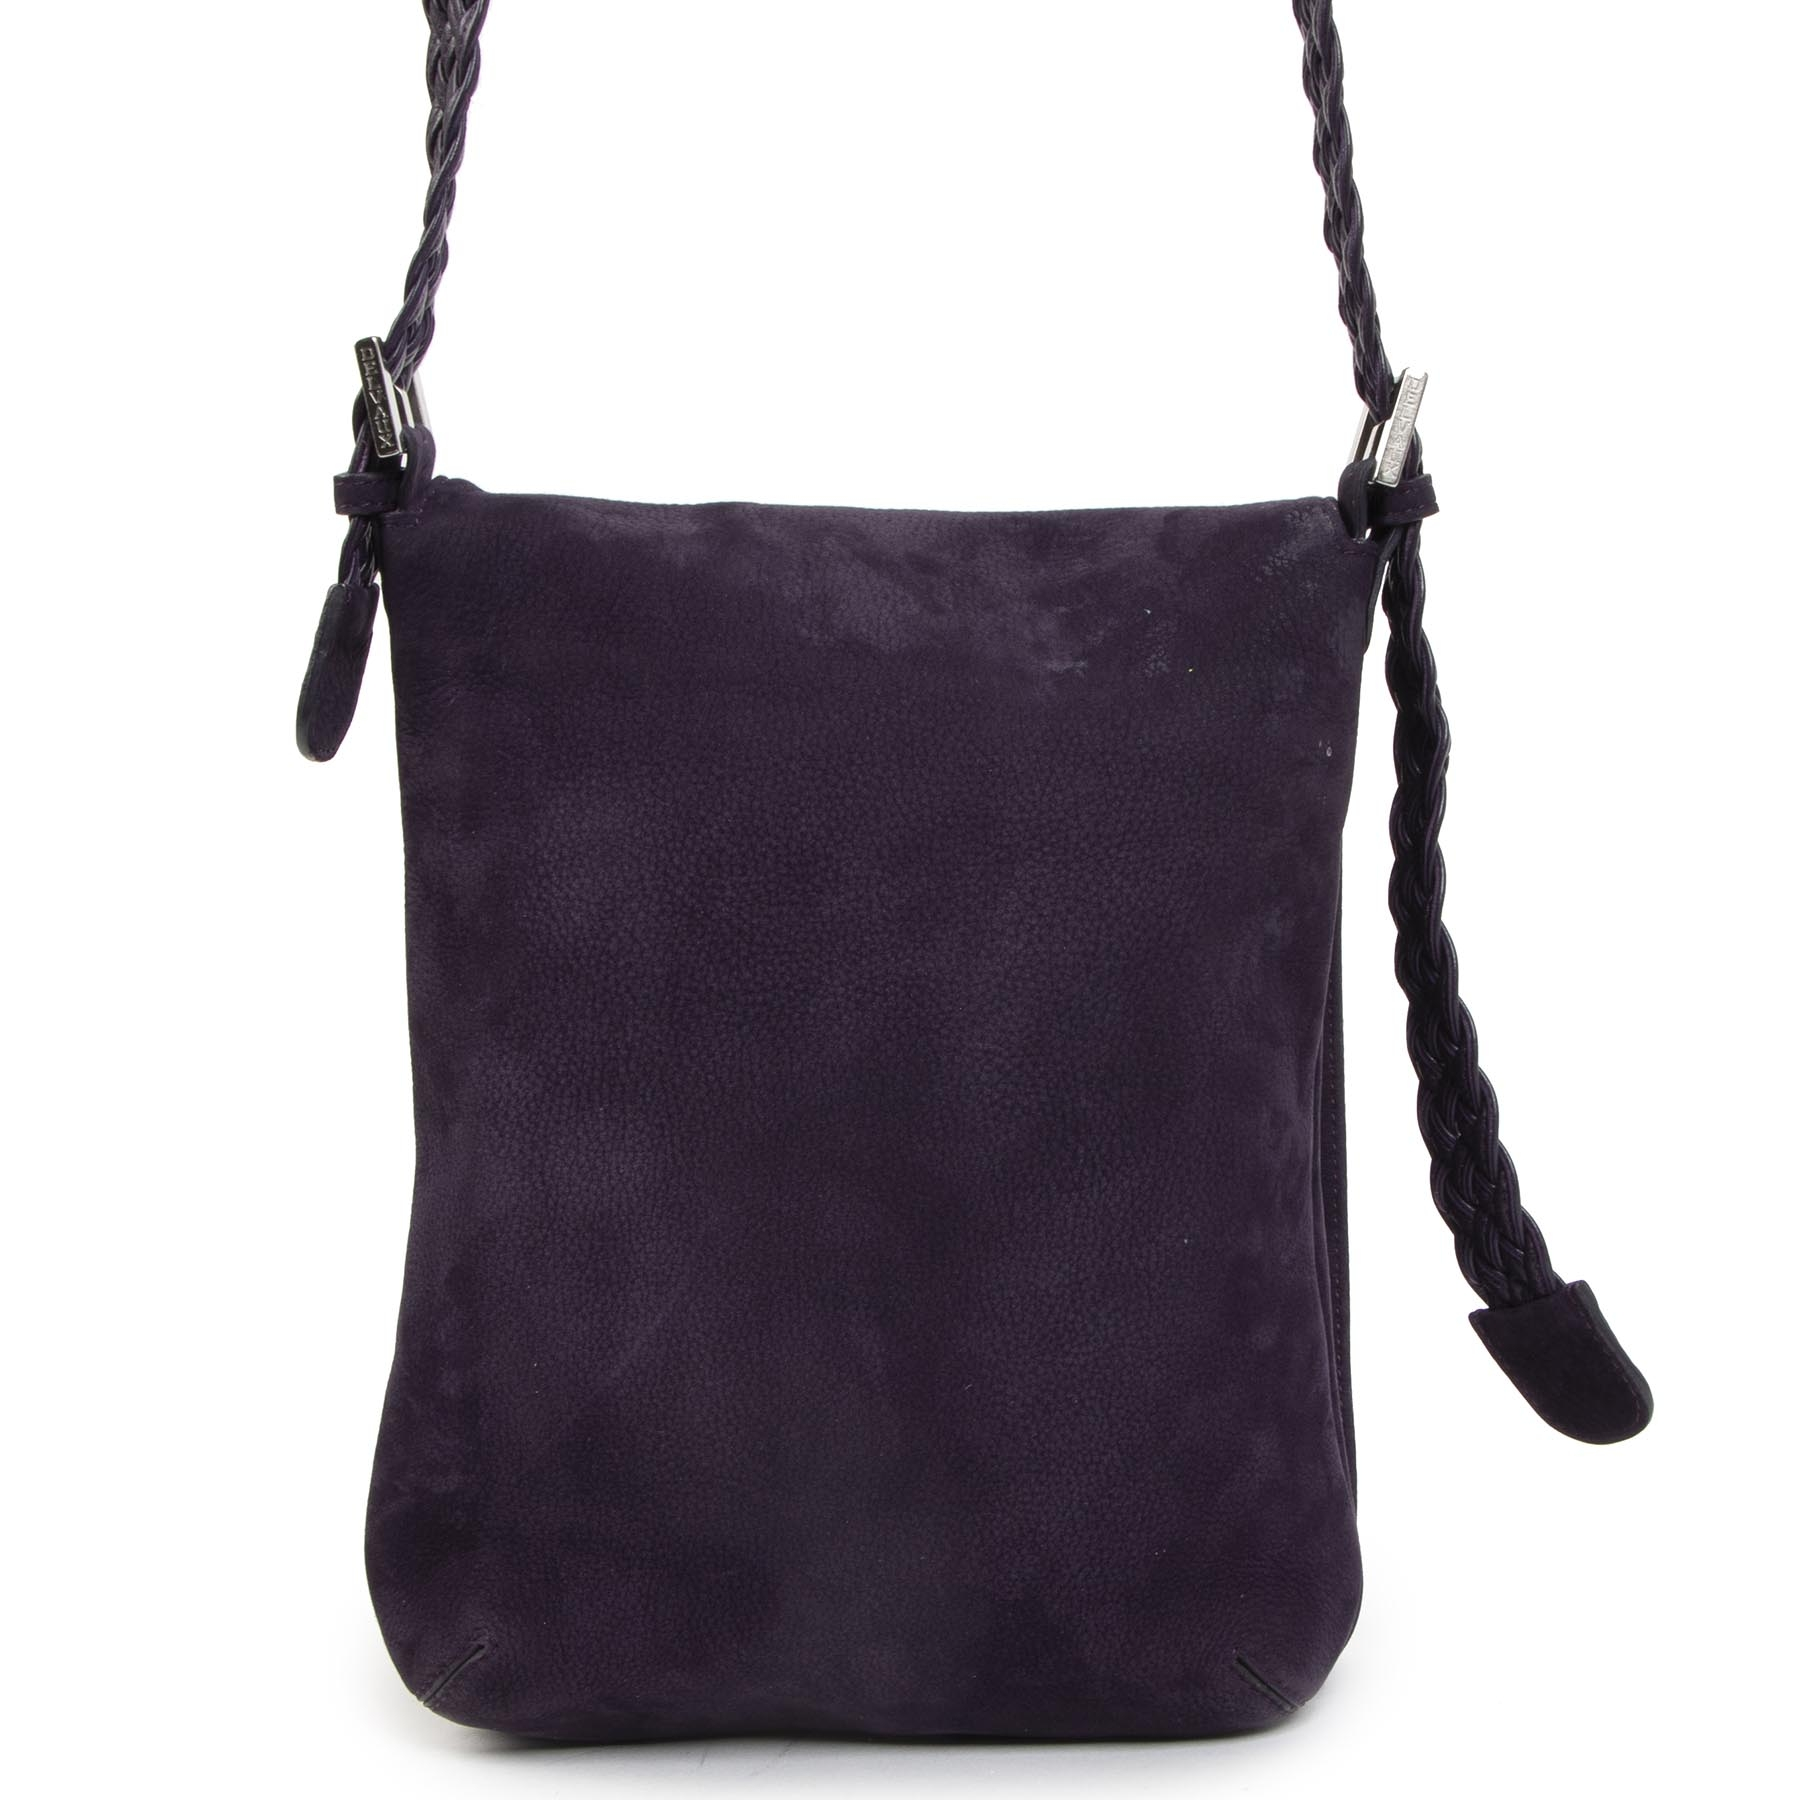 Authentic second-hand vintage Delvaux Purple Nubuck Crossbody Bag  buy online webshop LabelLOV